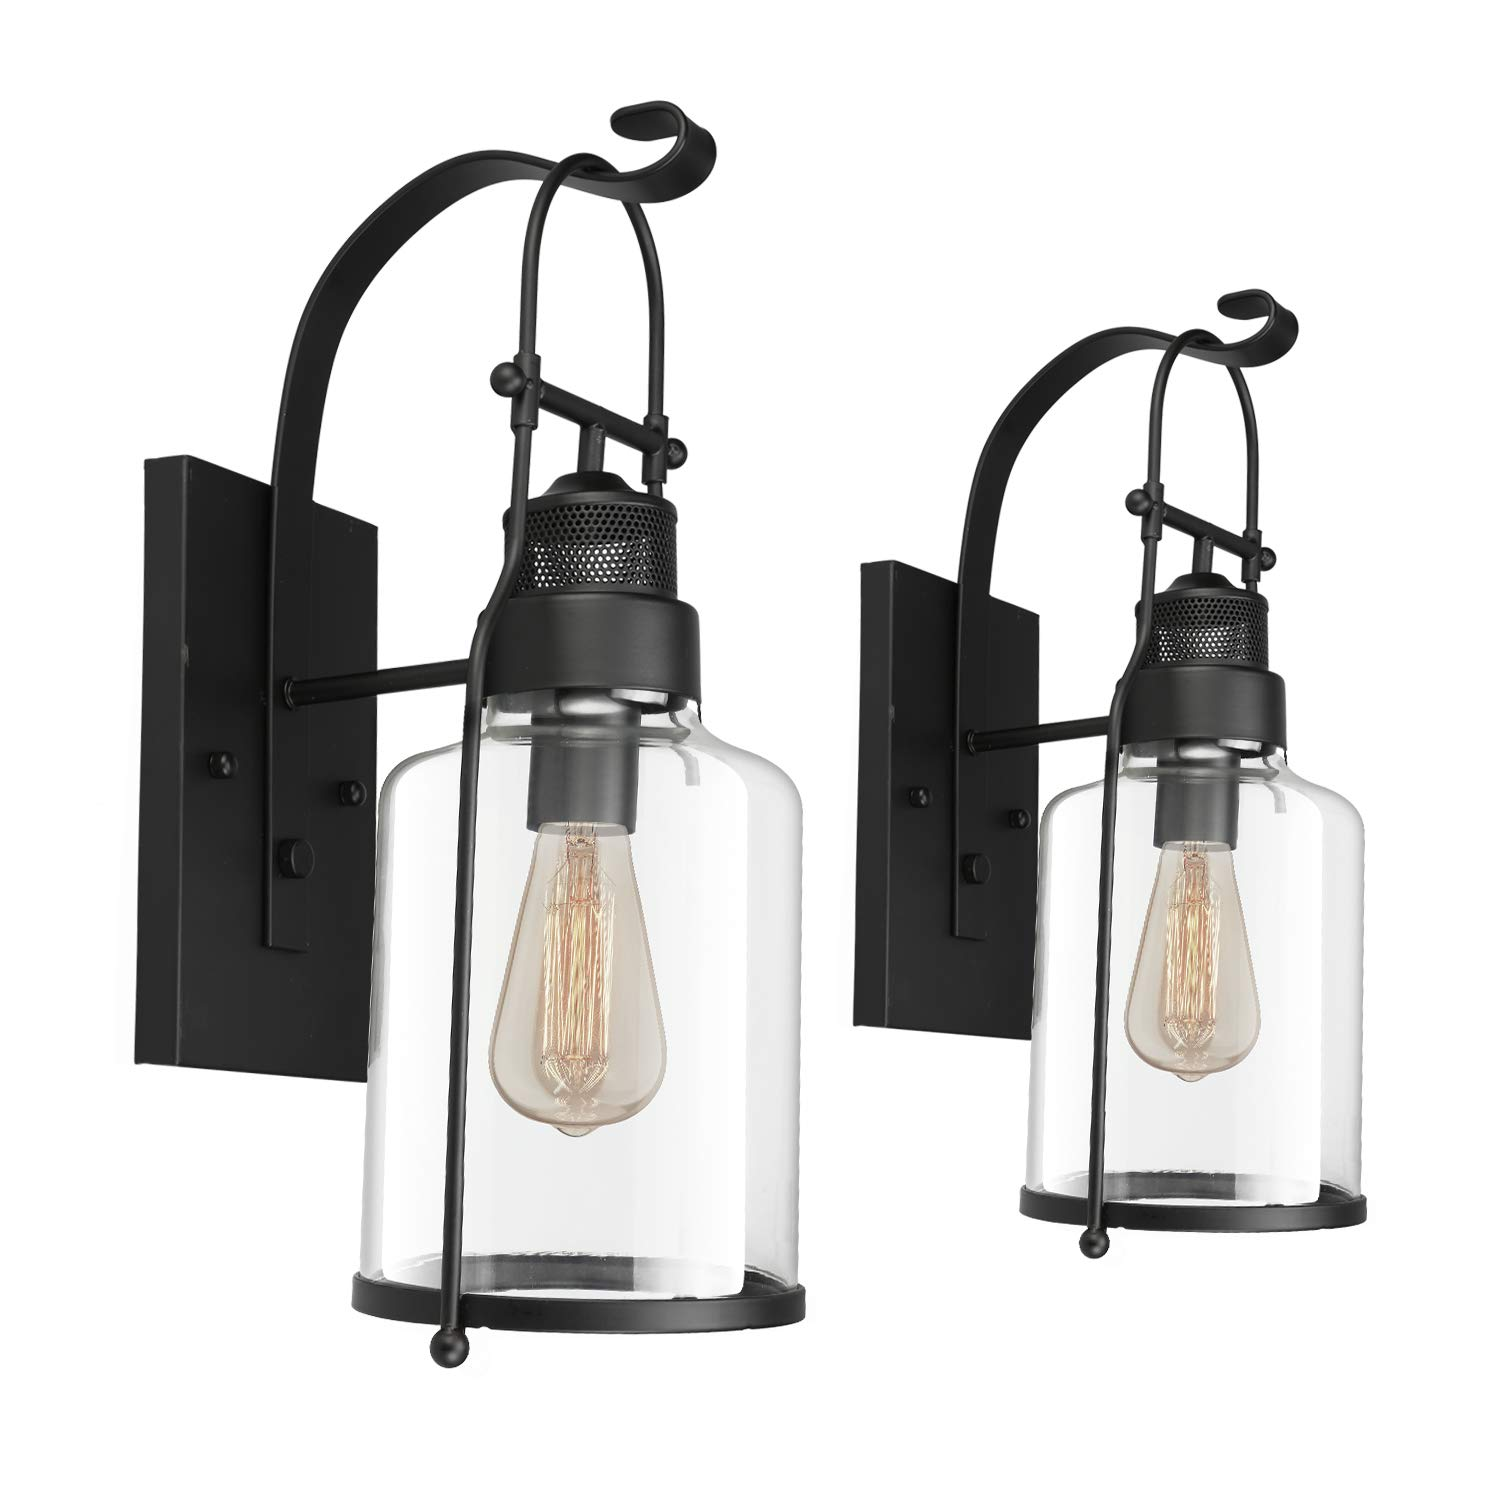 2pcs Vintage Glass Wall Lamp, Motent Industrial Retro Iron Glass Wall Lantern in Rubbed Bronze Finished, Antique Minimalism 1-Light Cage Box Wall Sconce, 5.9'' Dia for Bedside Corridor Parlor - Black